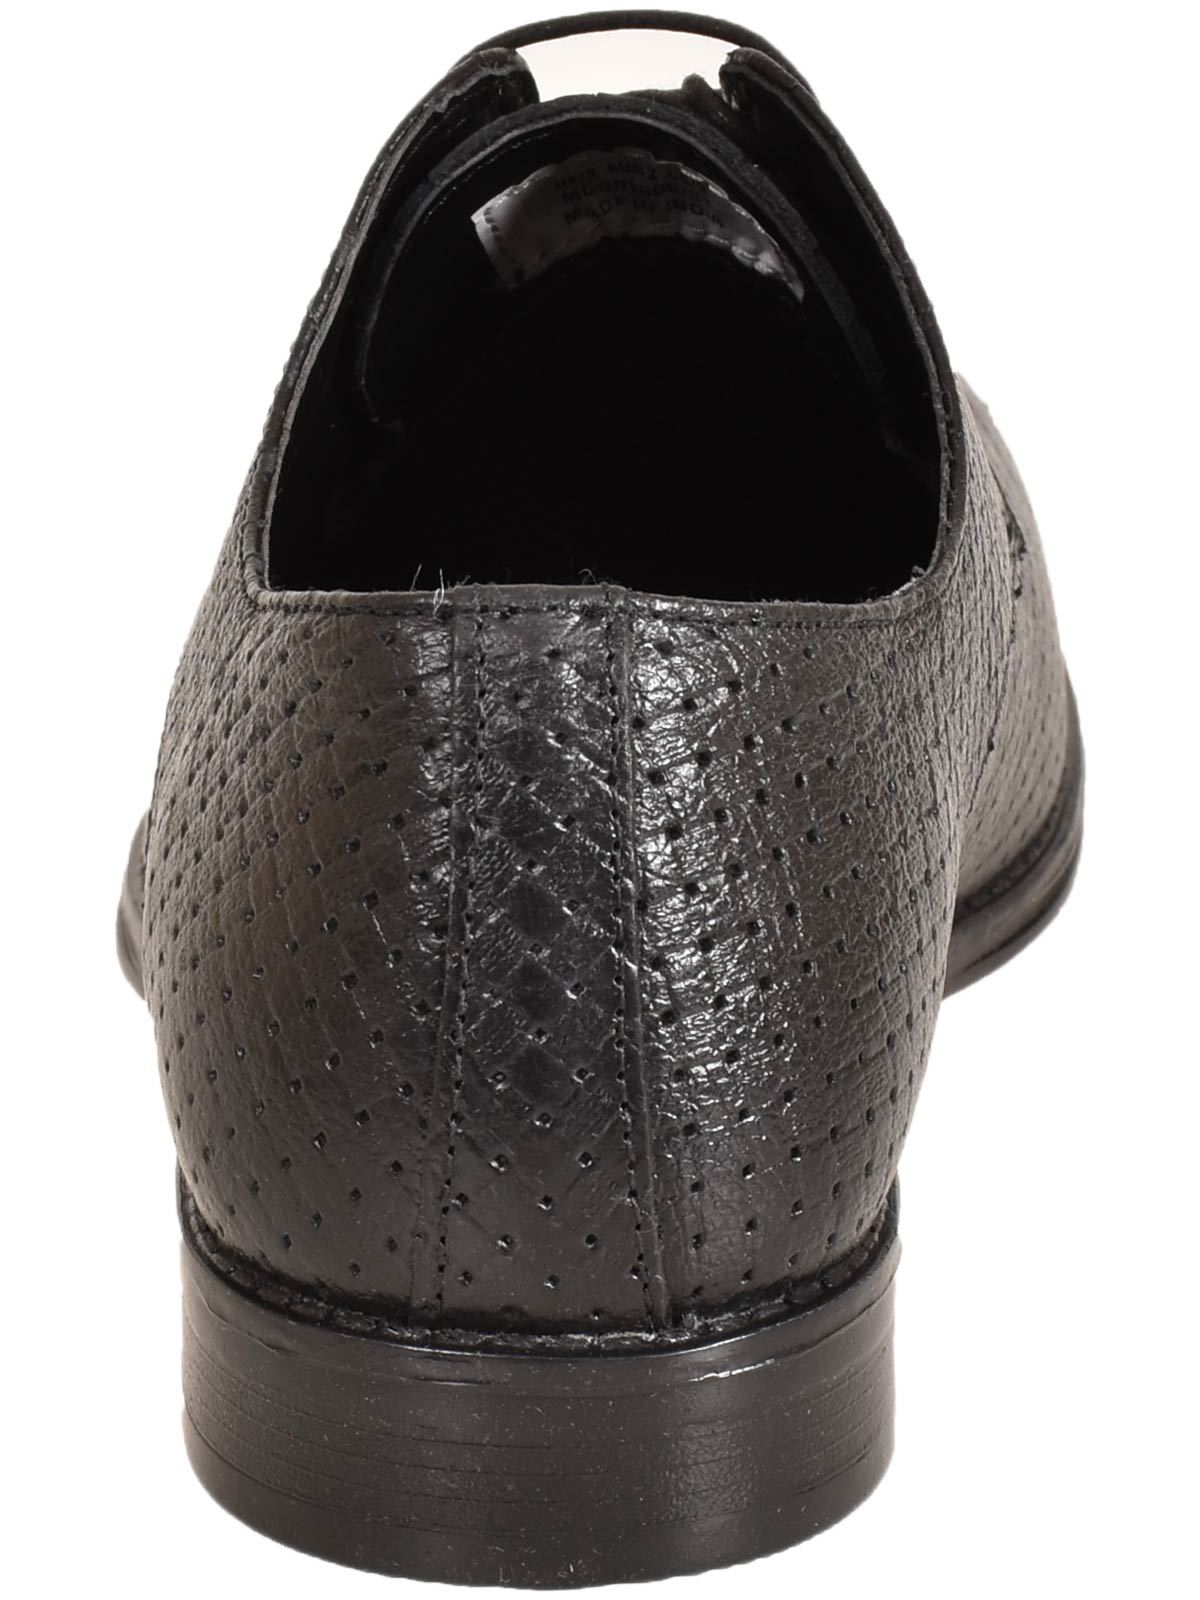 Mens-UK-Style-Leather-Lining-Formal-Office-Wedding-Smart-Work-Brogue-Shoes thumbnail 26